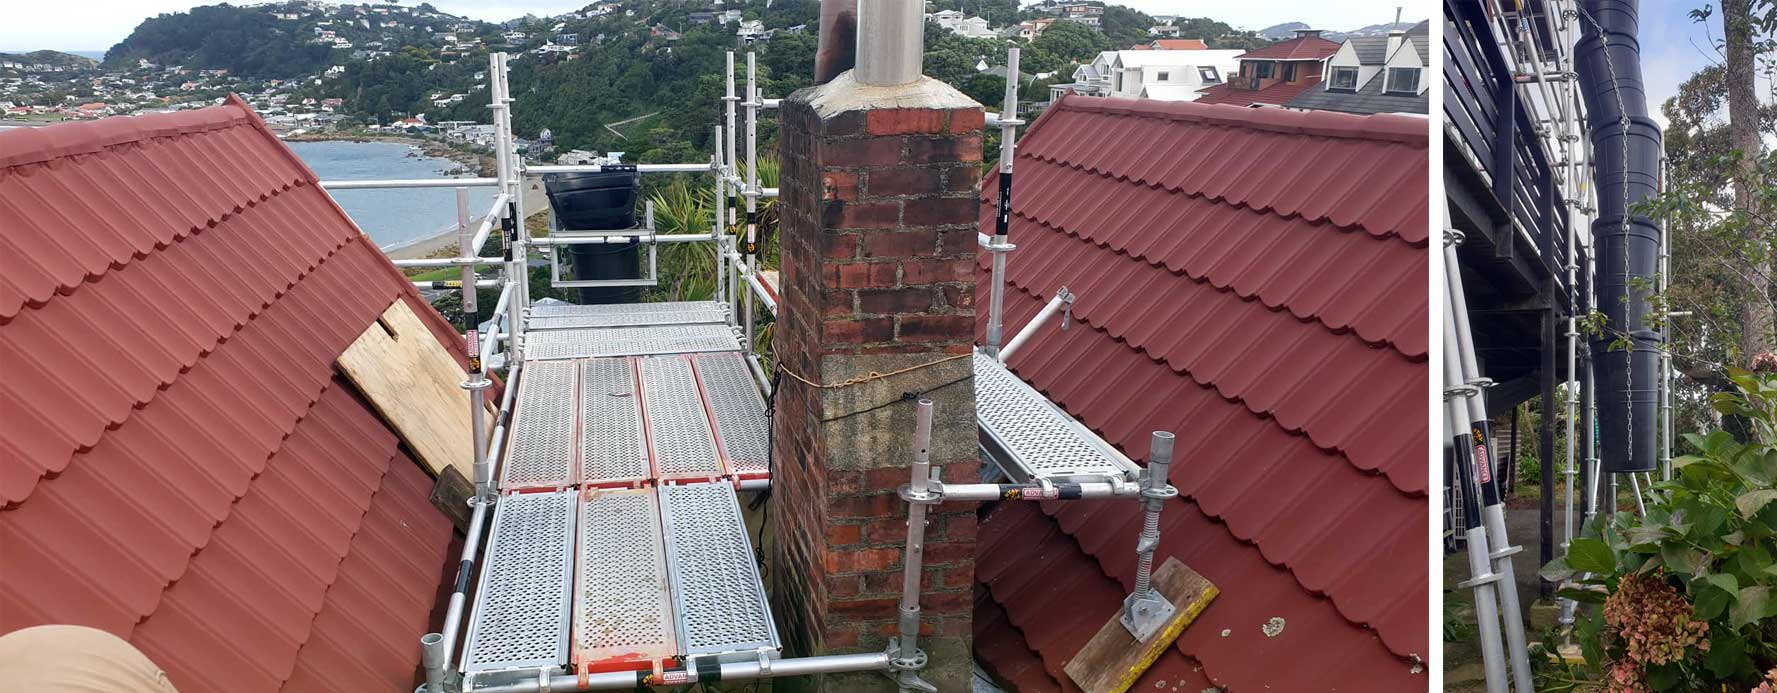 Scaffold & Rubbish Chute Scaffold Karaka Bays